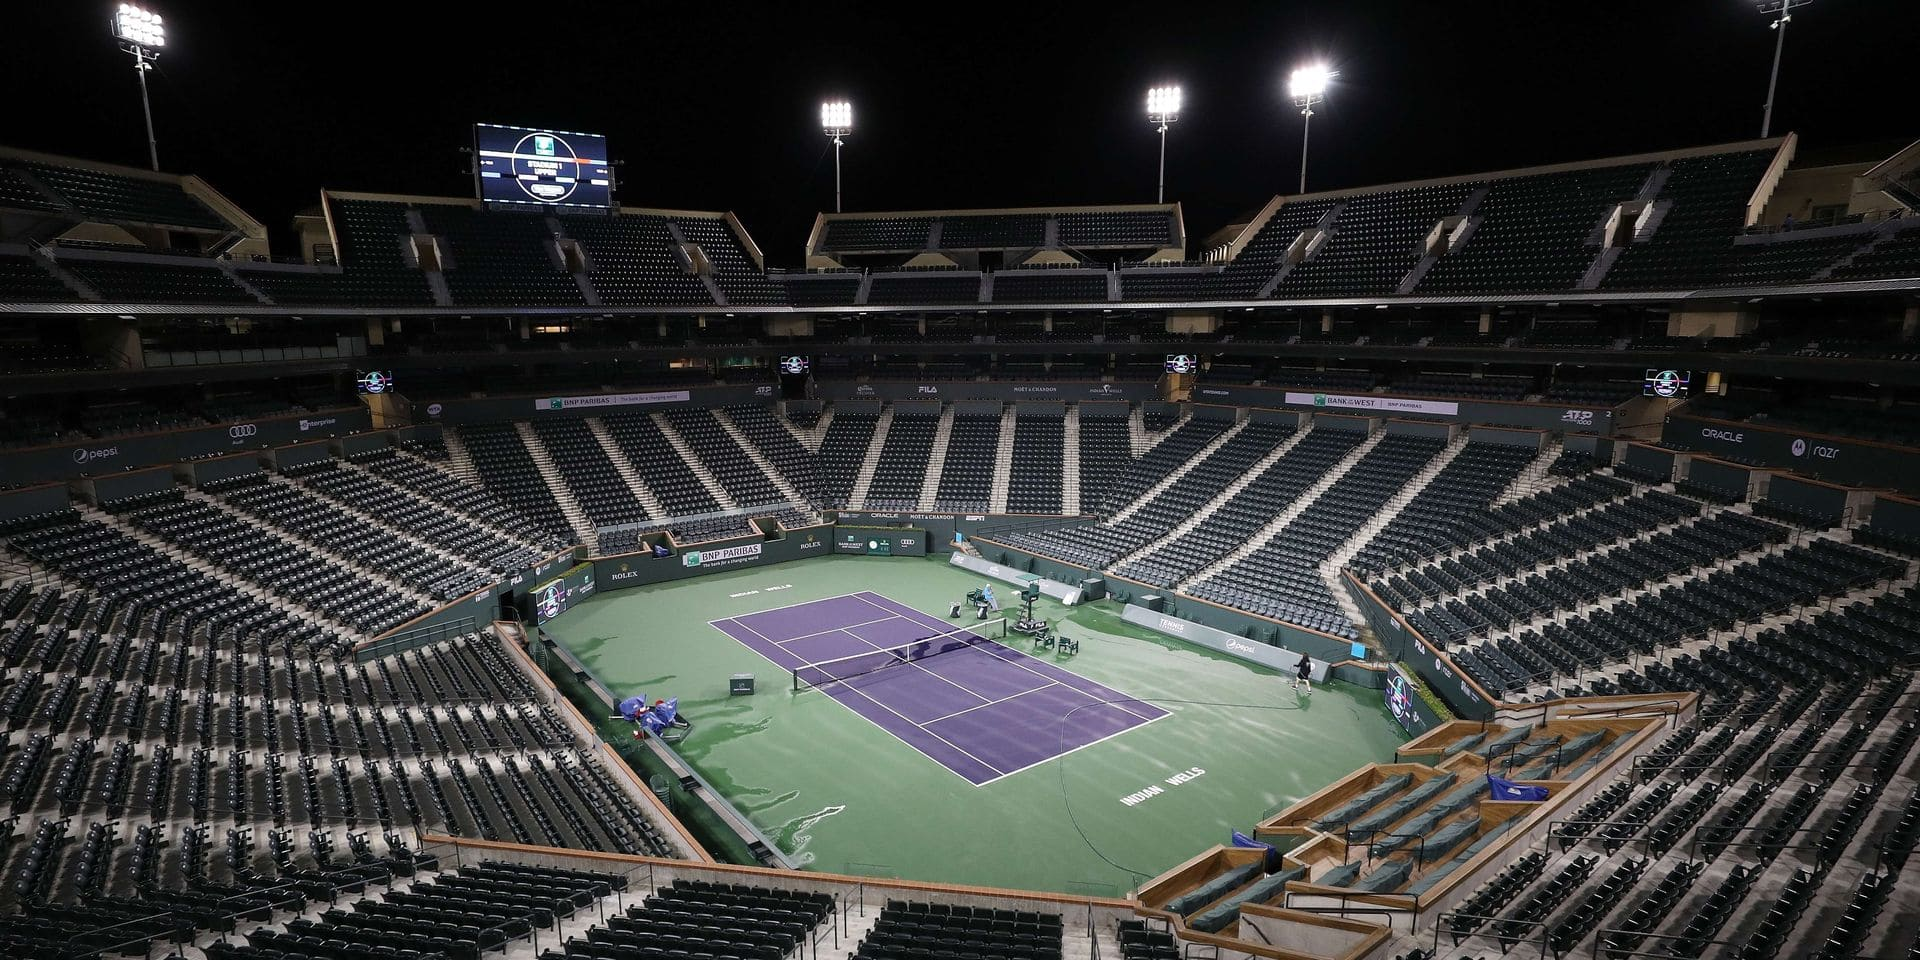 BNP Paribas Open Cancelled Due To Concern Over Coronavirus